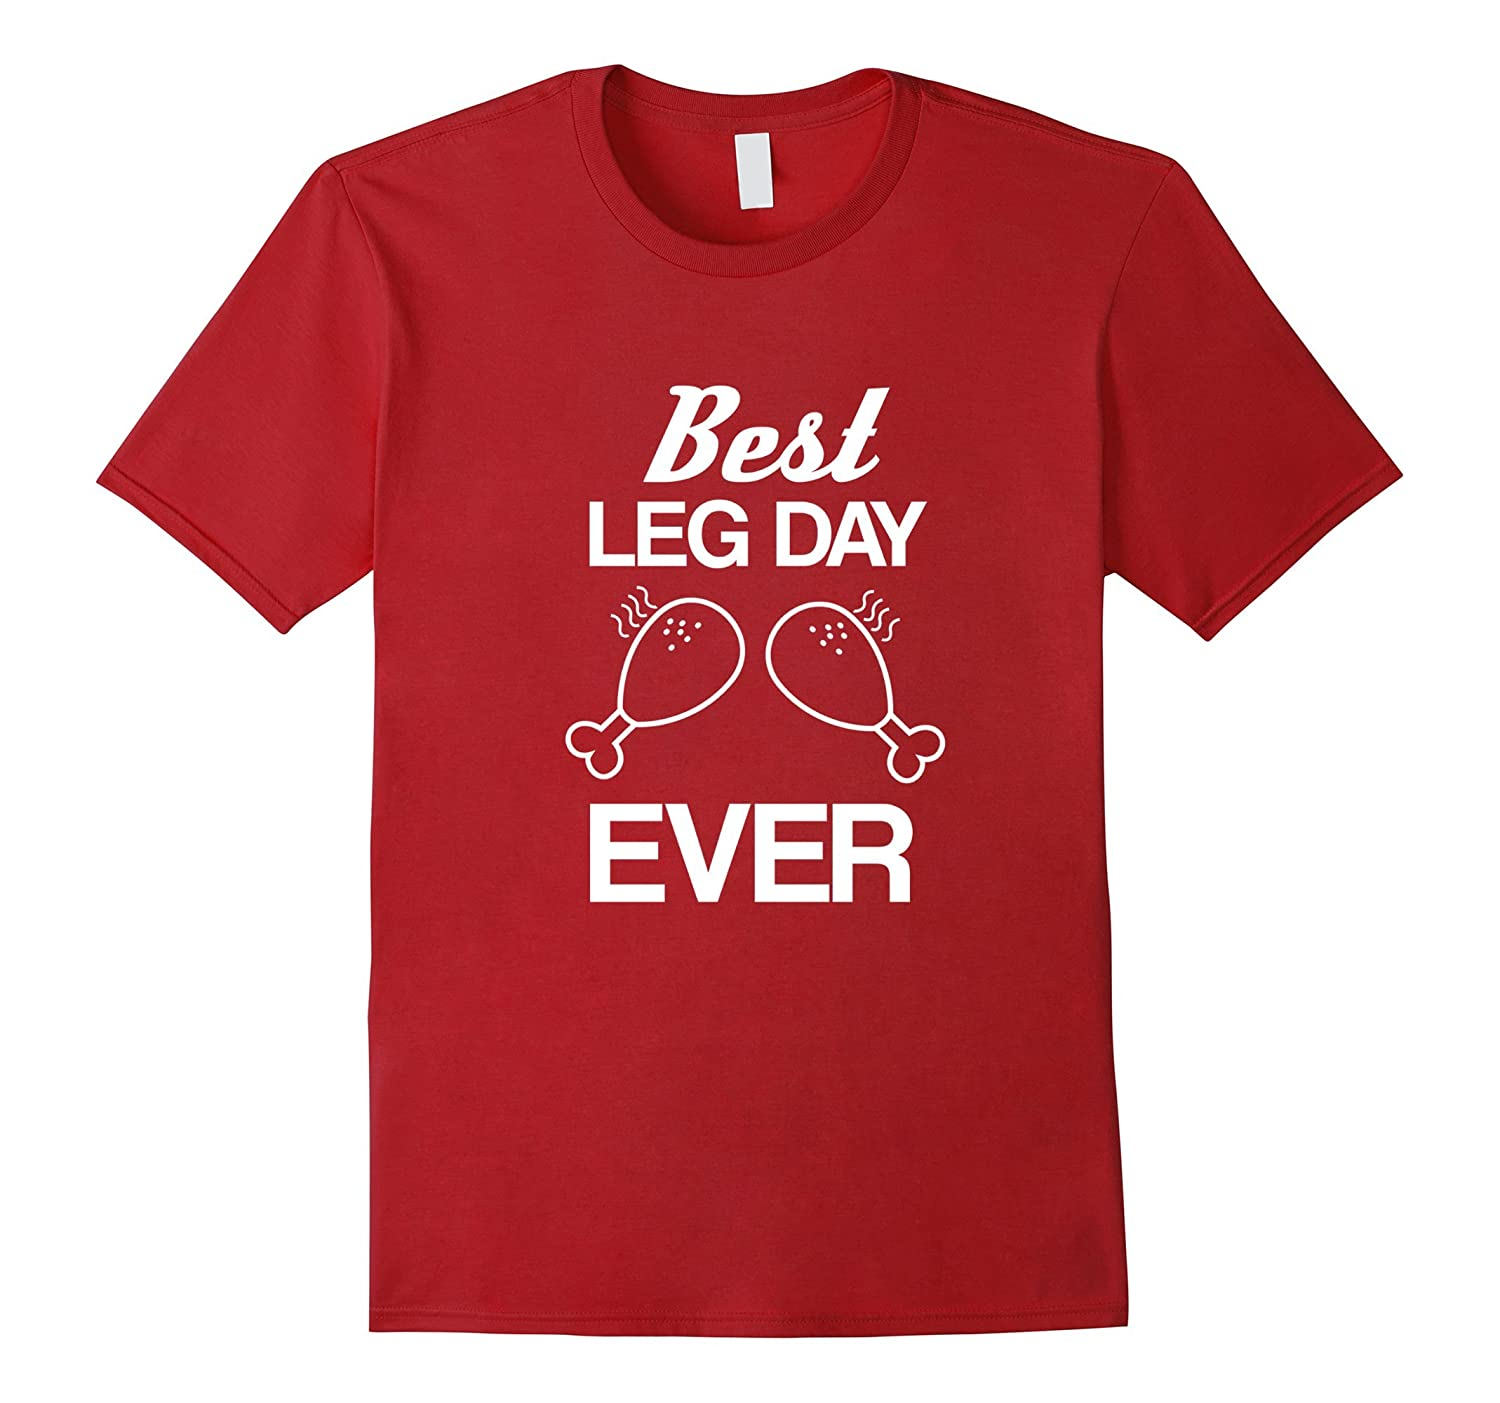 Best Leg Day Ever Shirt Thanksgiving T-shirt Outfit Turkey-CL